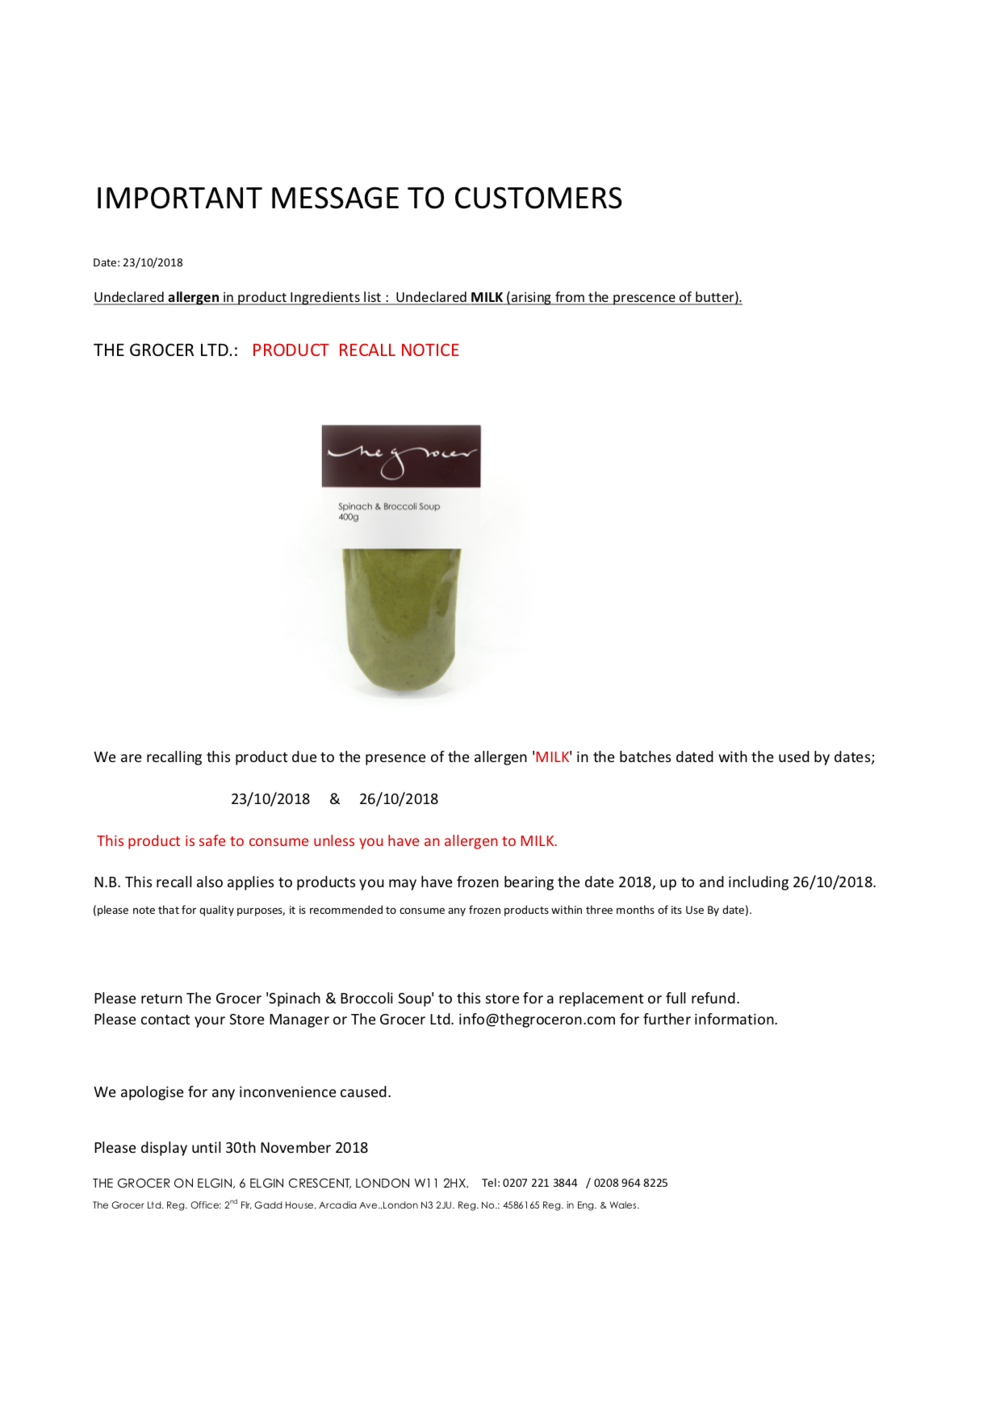 HACCP F39E-recall-spinach-broccoli soup-FSA comments Sheet1.png